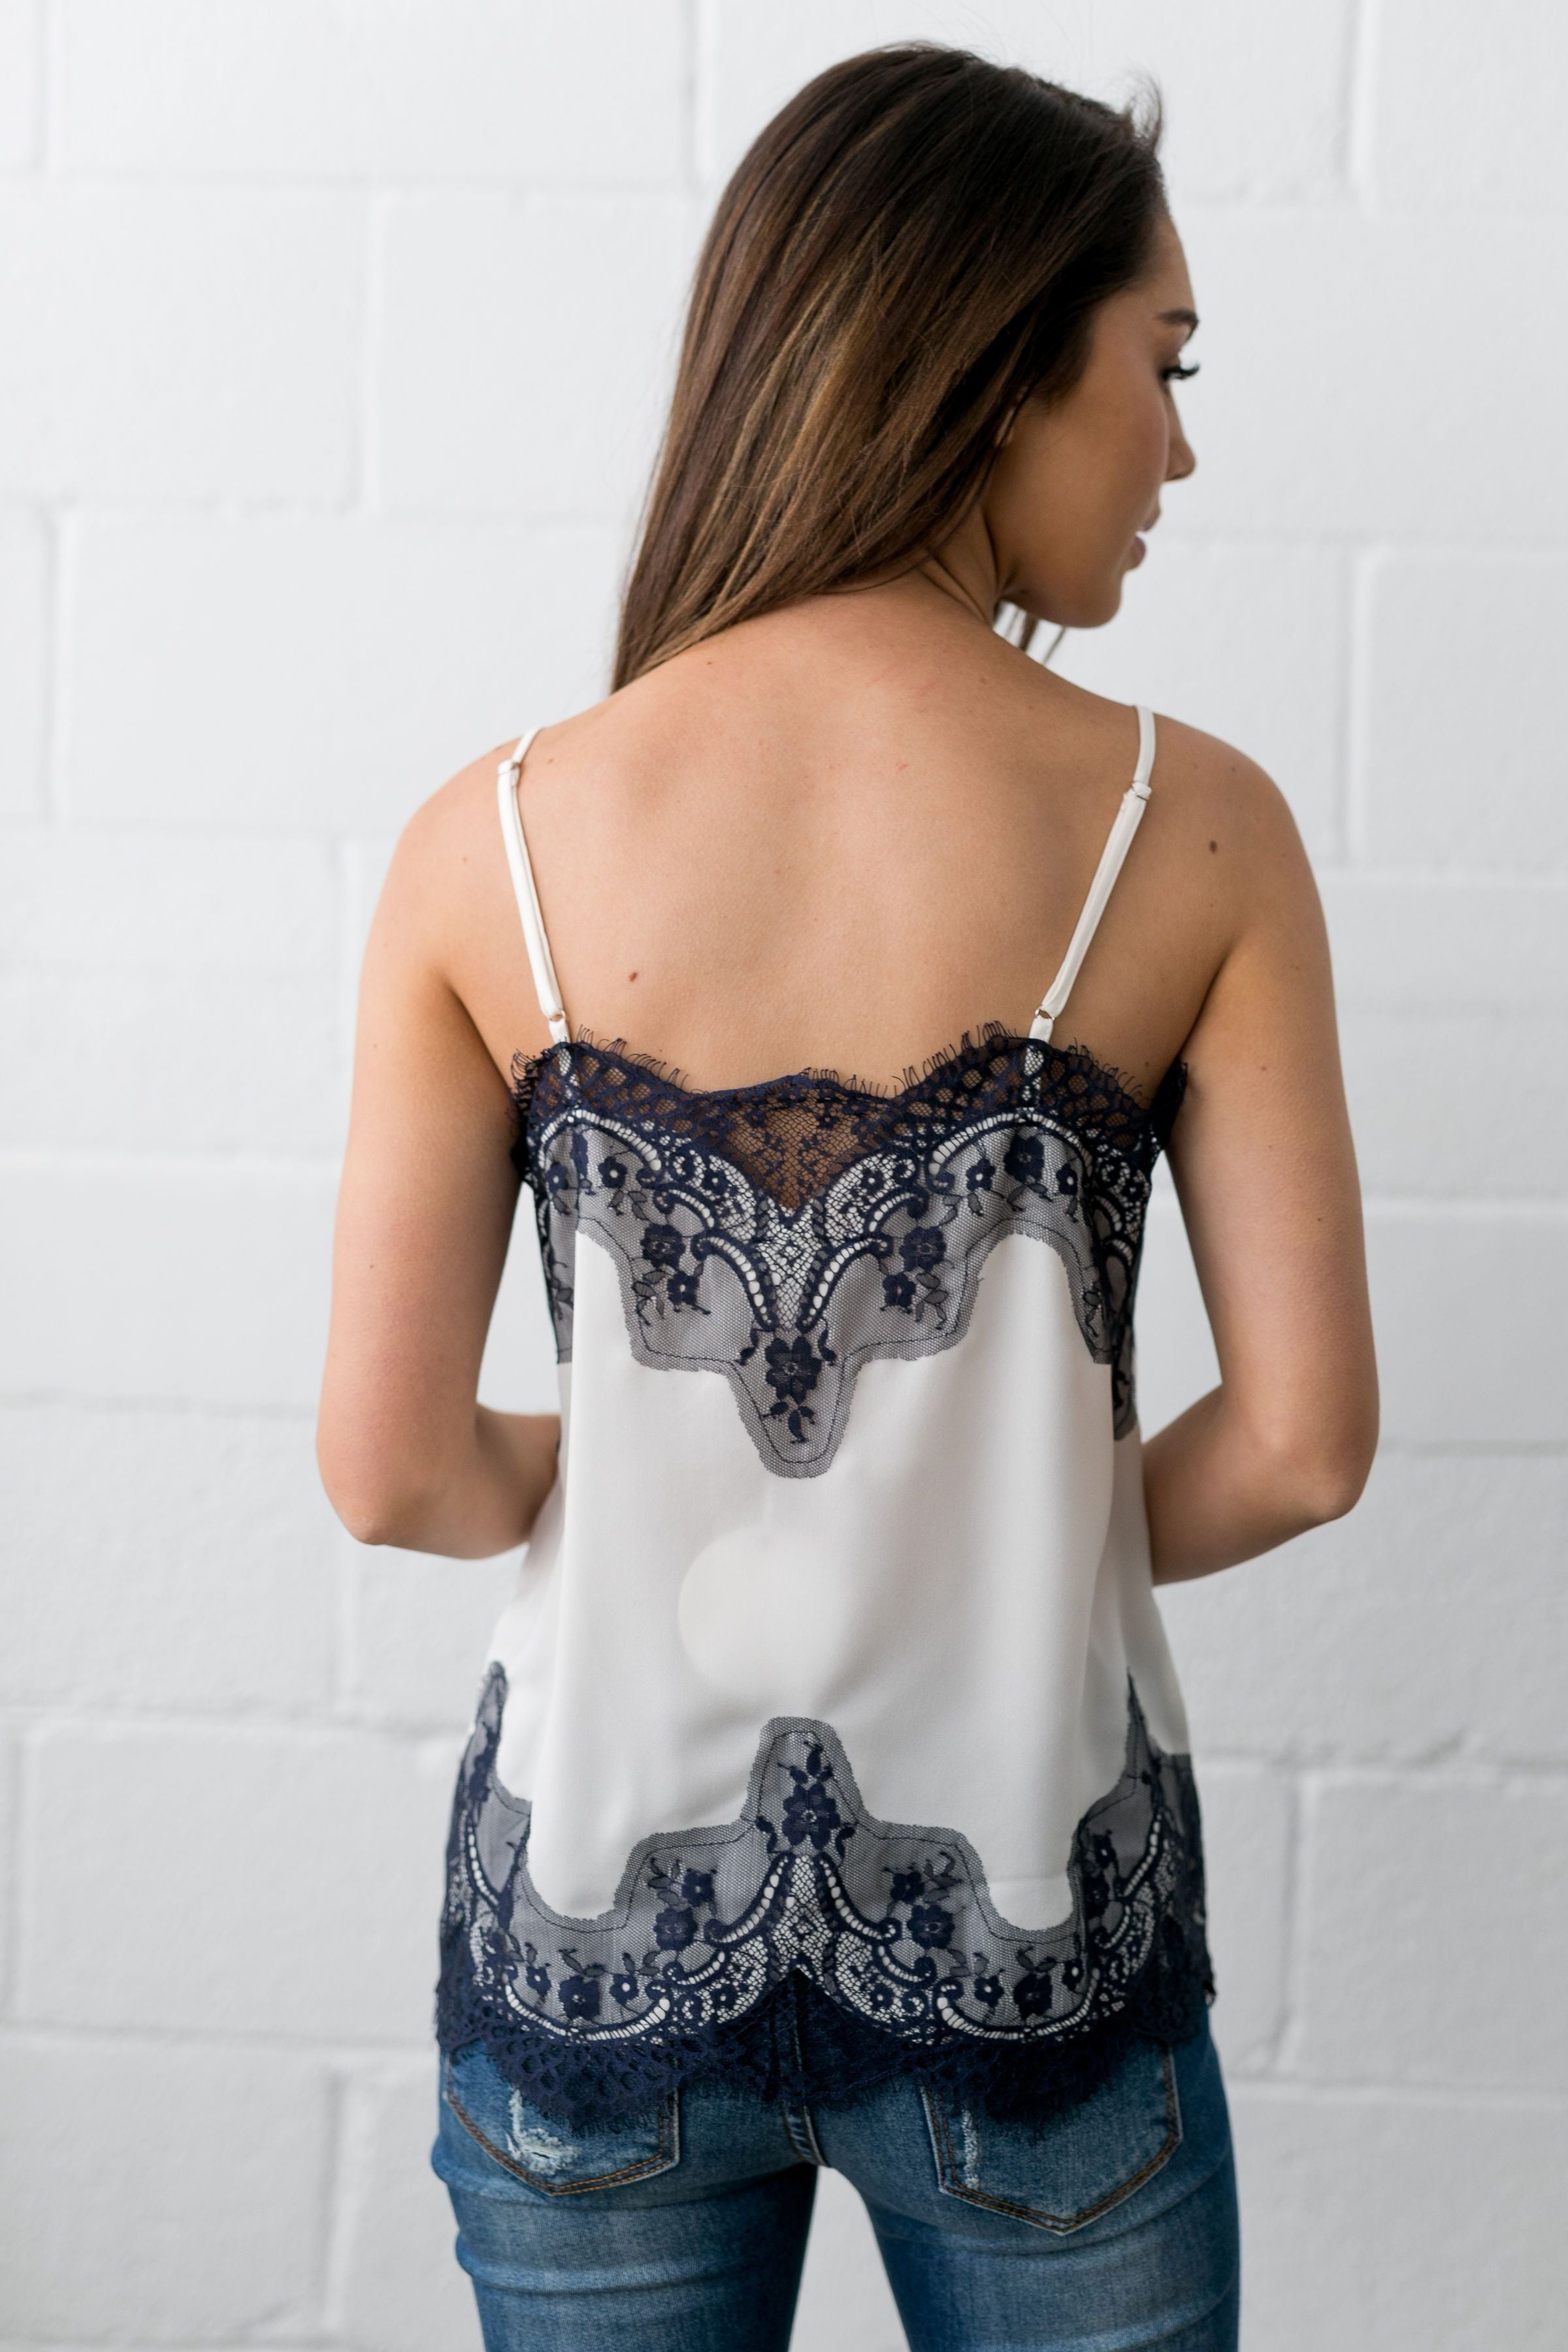 Chantilly Lace Camisole - ALL SALES FINAL